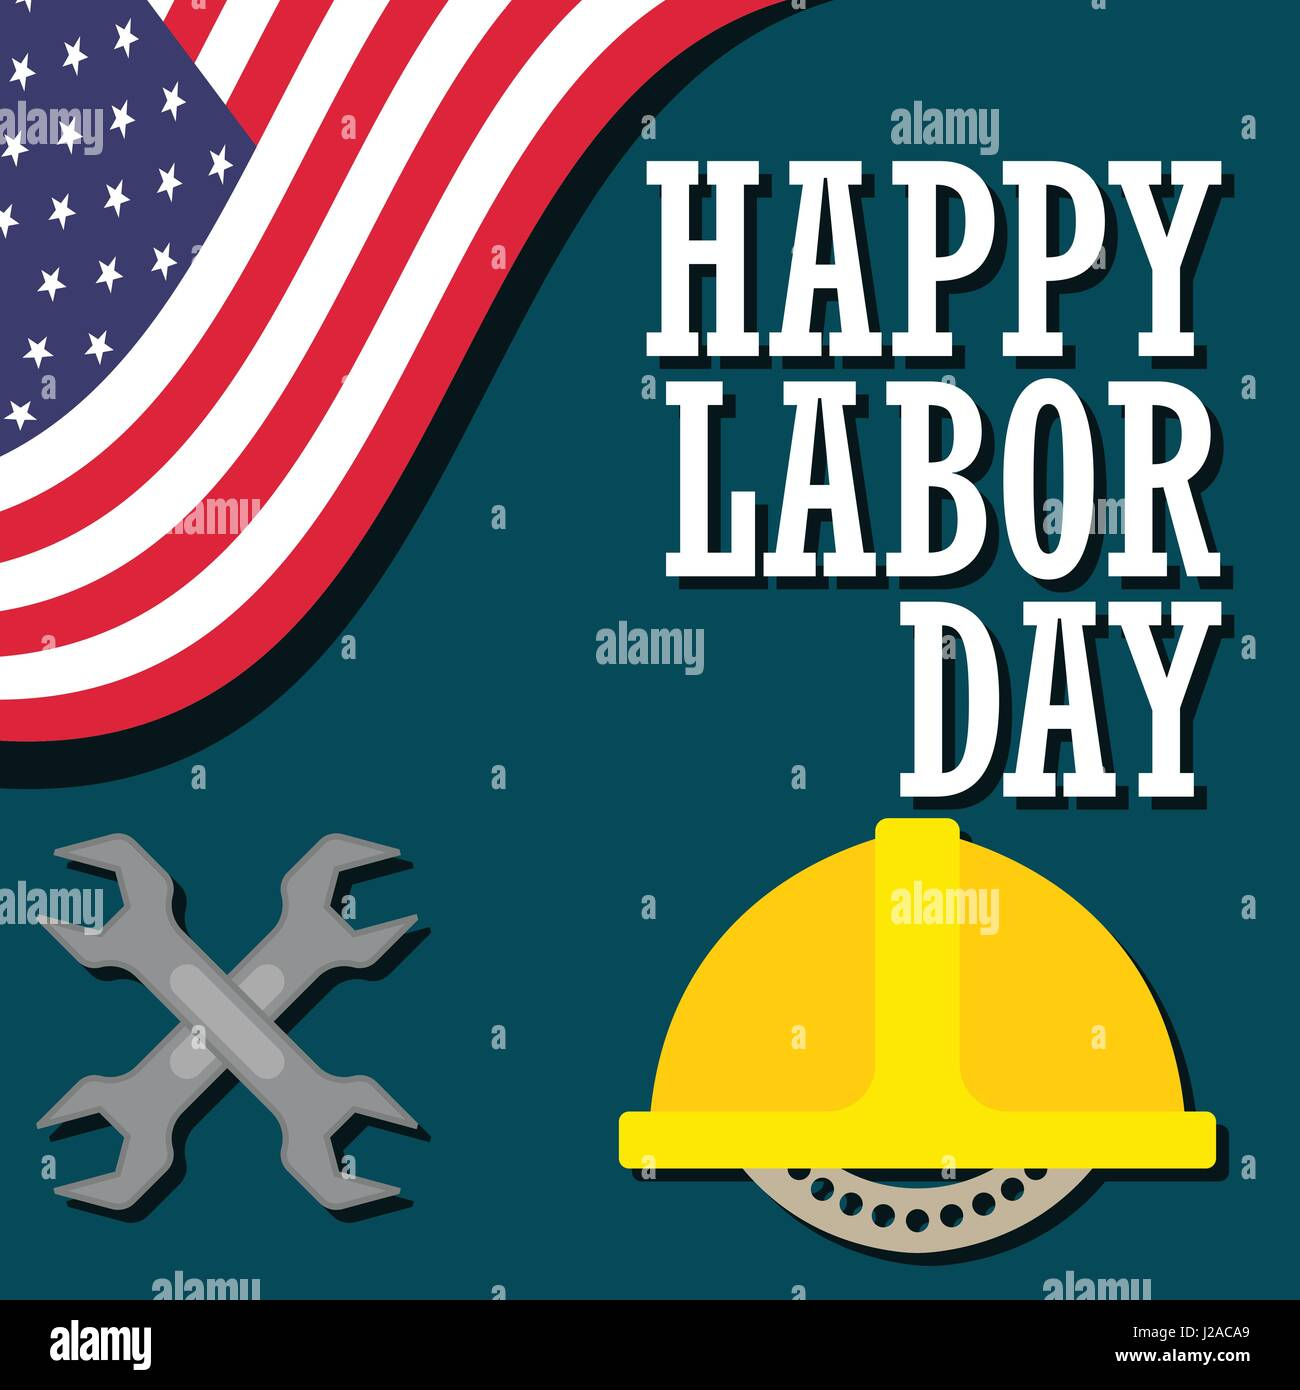 Poster Of Happy Labor Day Labour Day Sale Day May Day 1 May